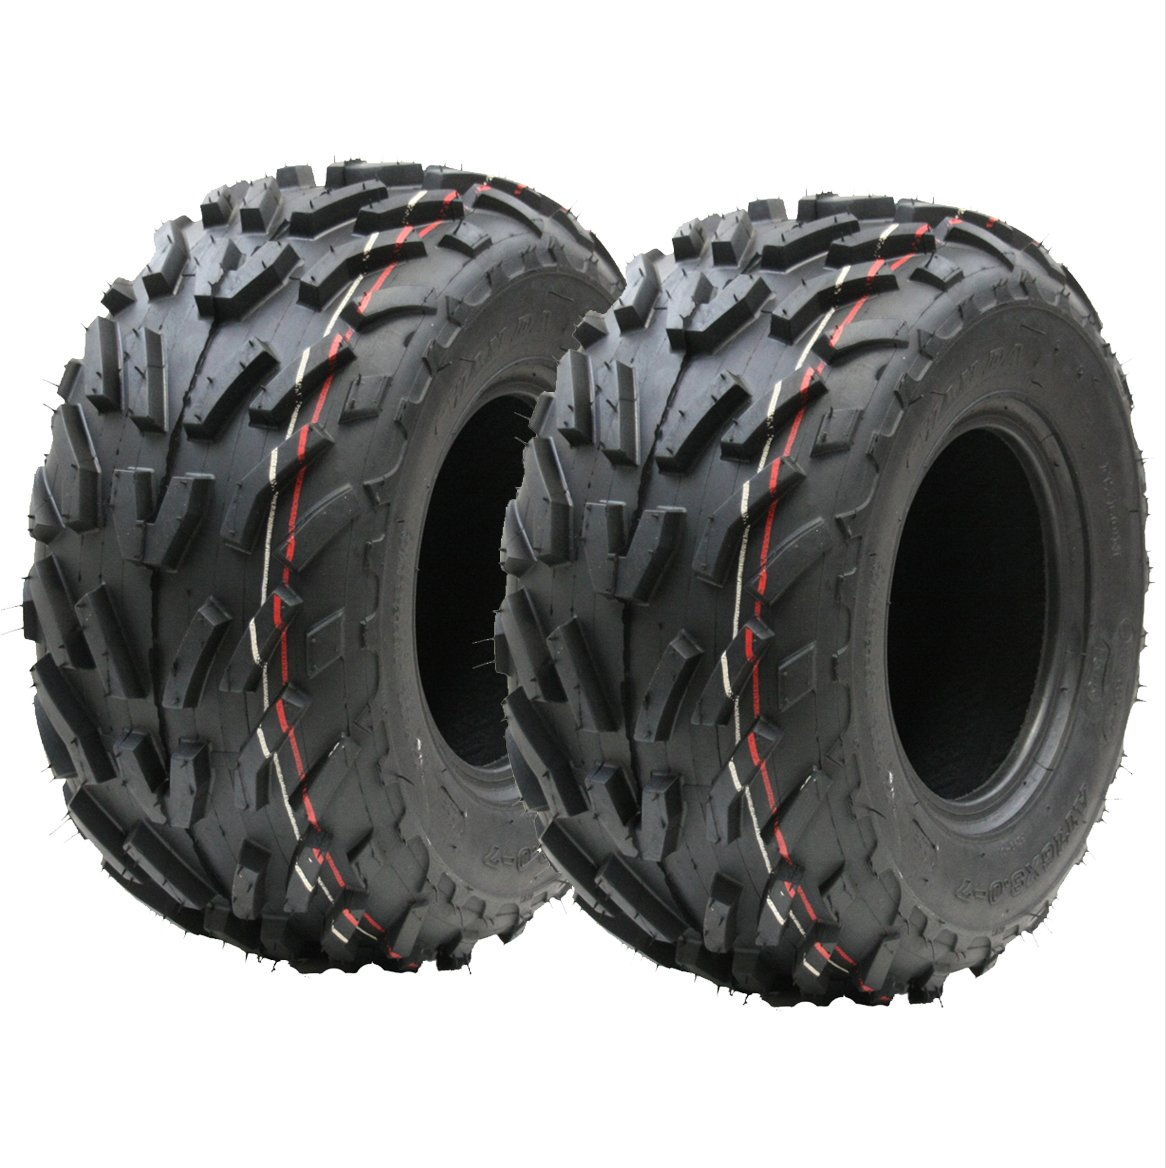 Two (pair) 16x8.00-7 quad tyres, 16 x 8-7 ATV E marked road legal tyre 7 inch Wanda